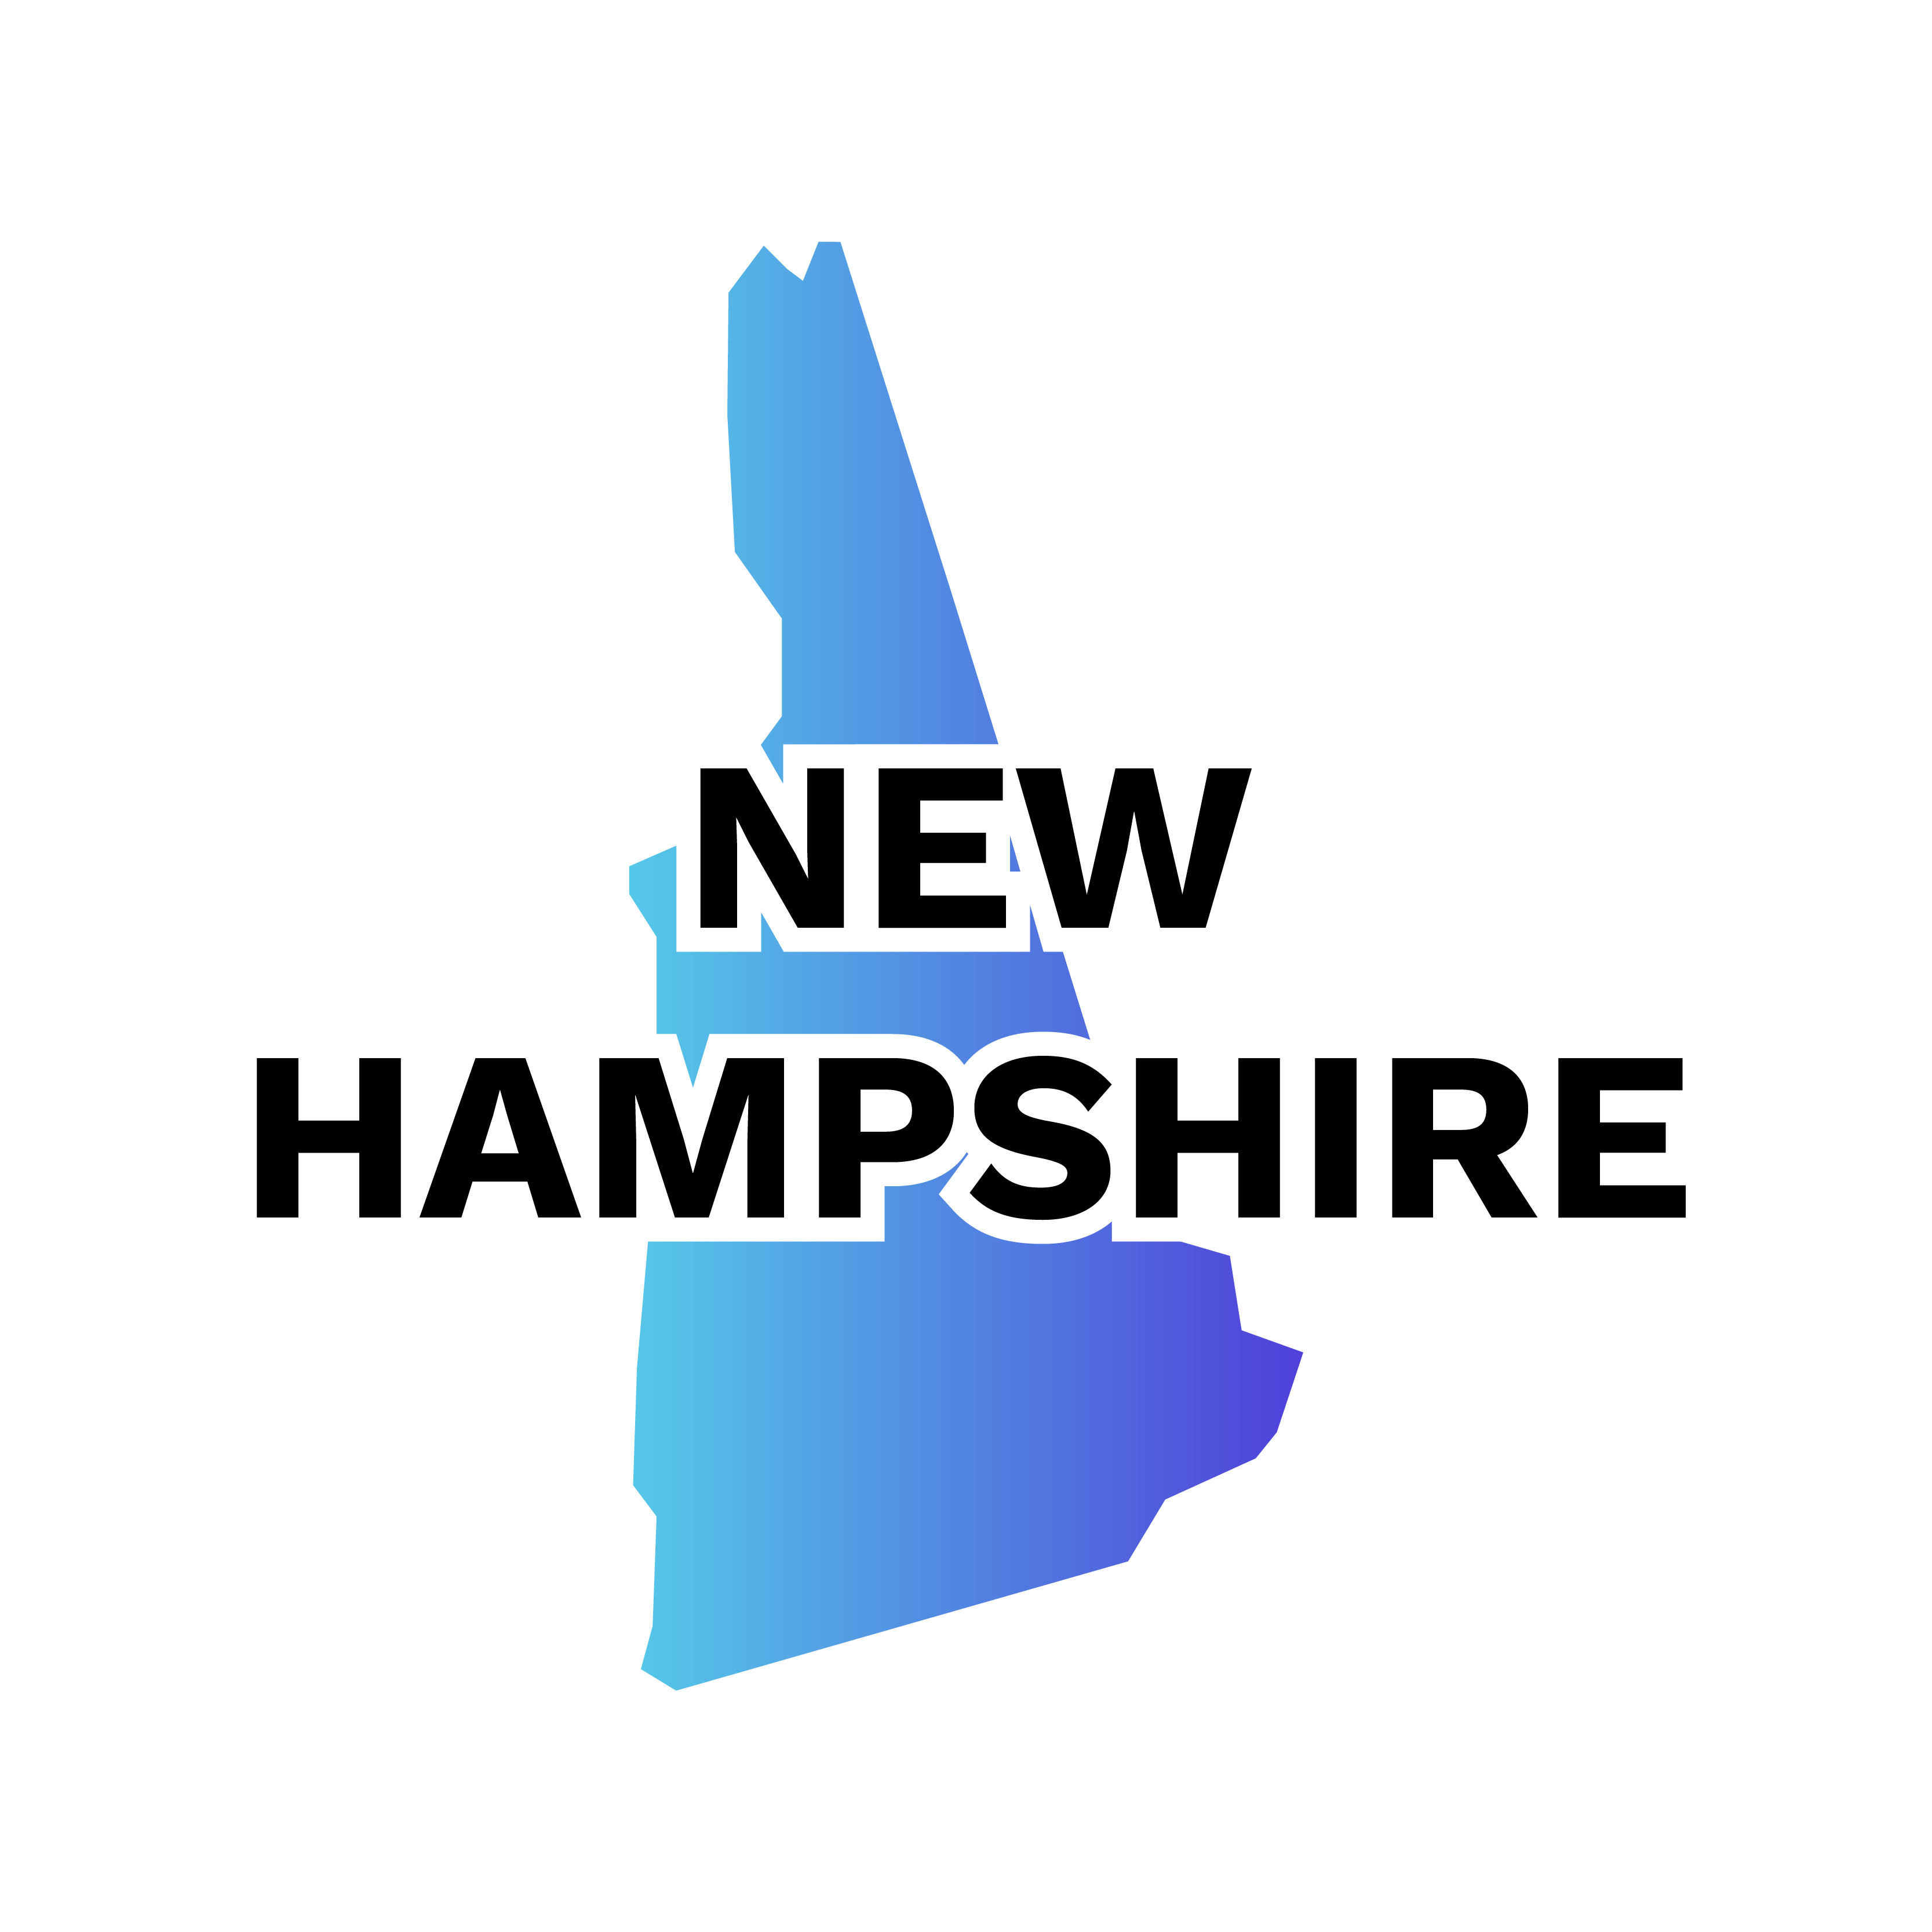 New Hampshire State Image